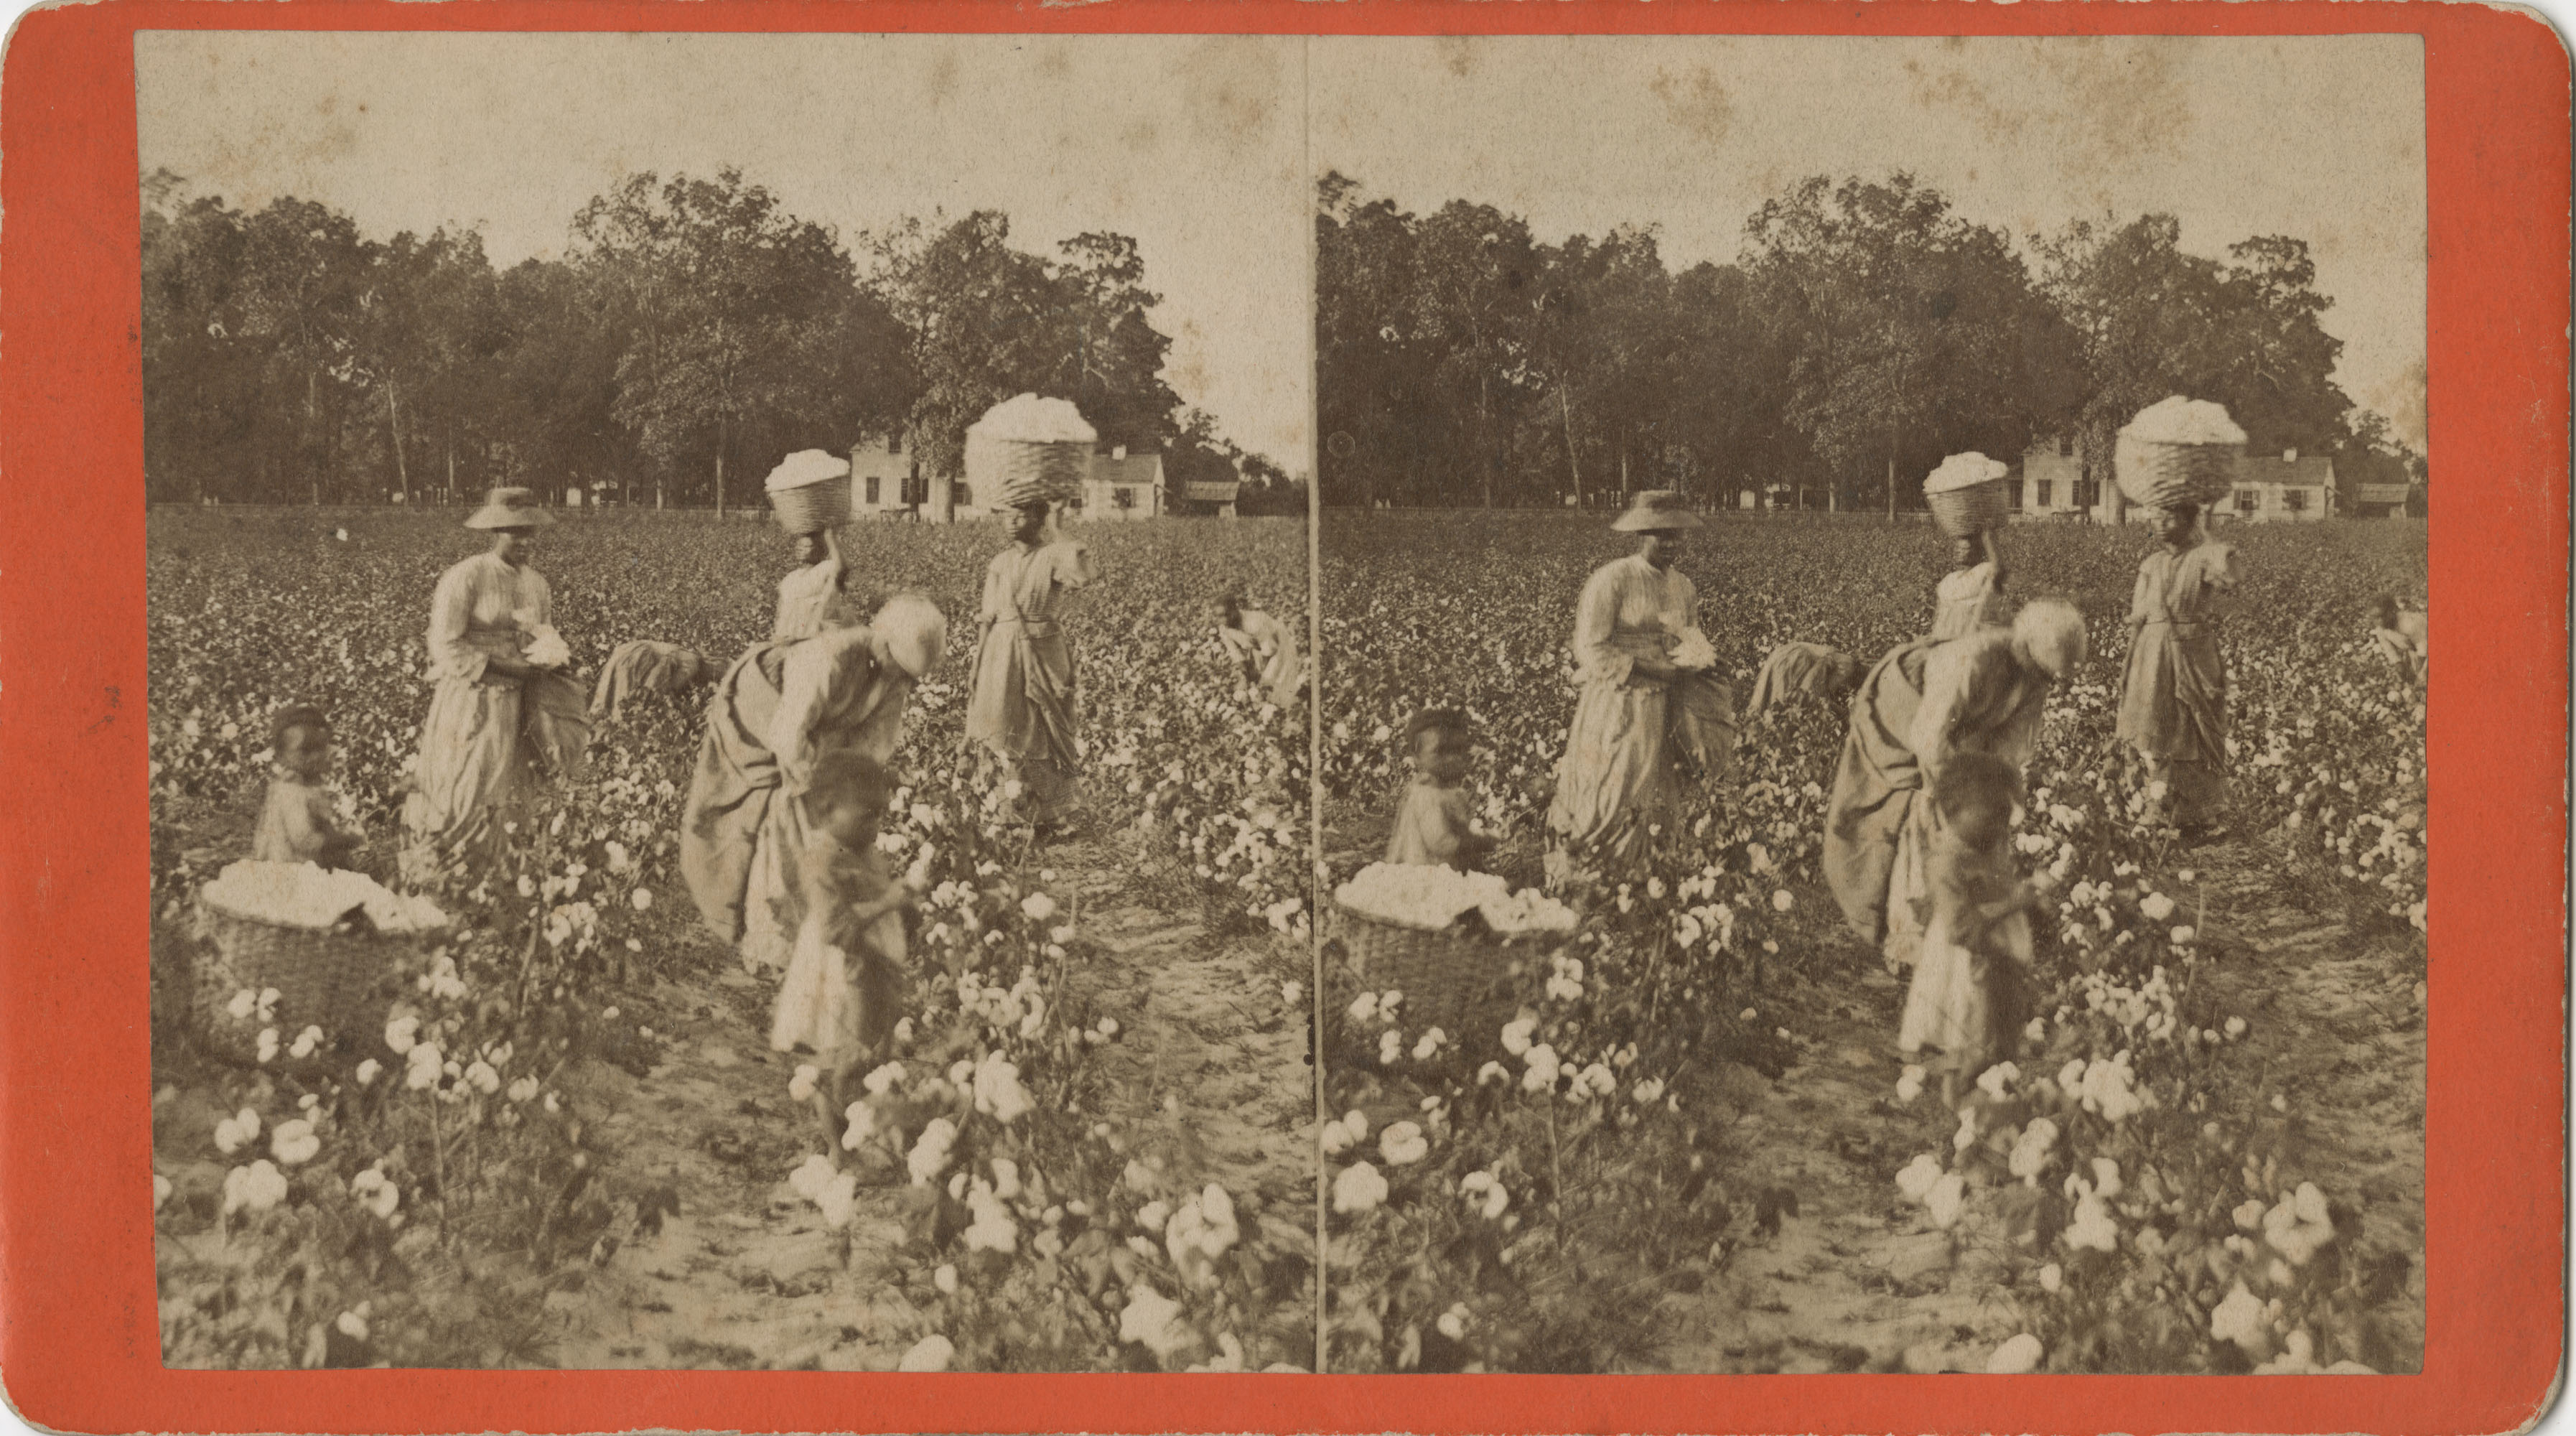 Stereo Card Depicting Women and Children Working in a Cotton Field